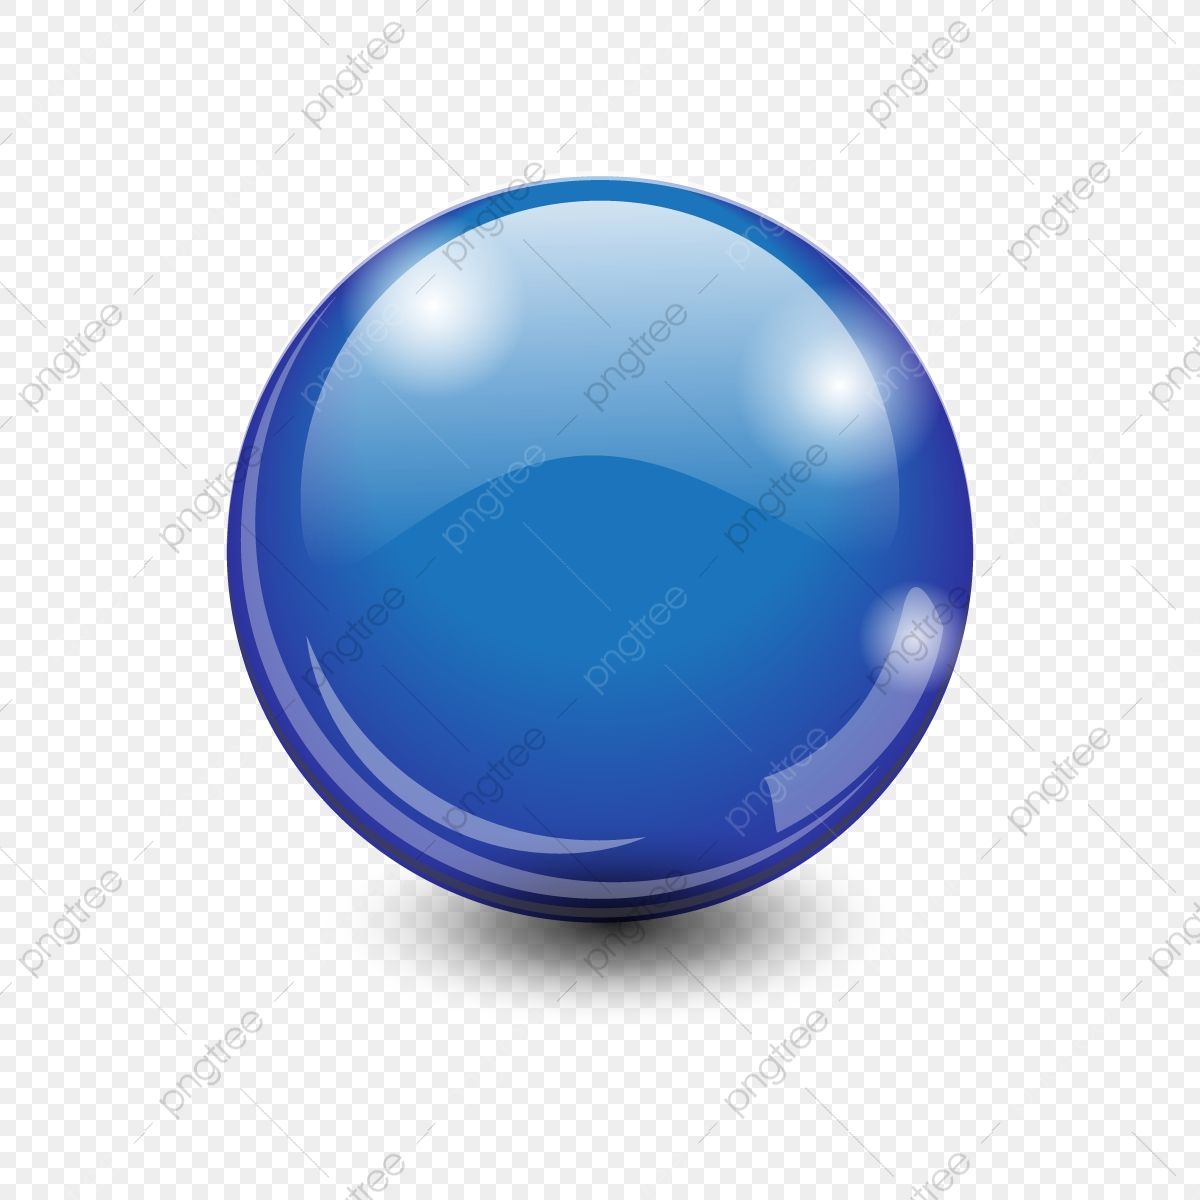 Realistic And Shiny Blue Ball Ball Decoration Cliparts Png And Vector With Transparent Background For Free Download Transparent Background Transparent Ball